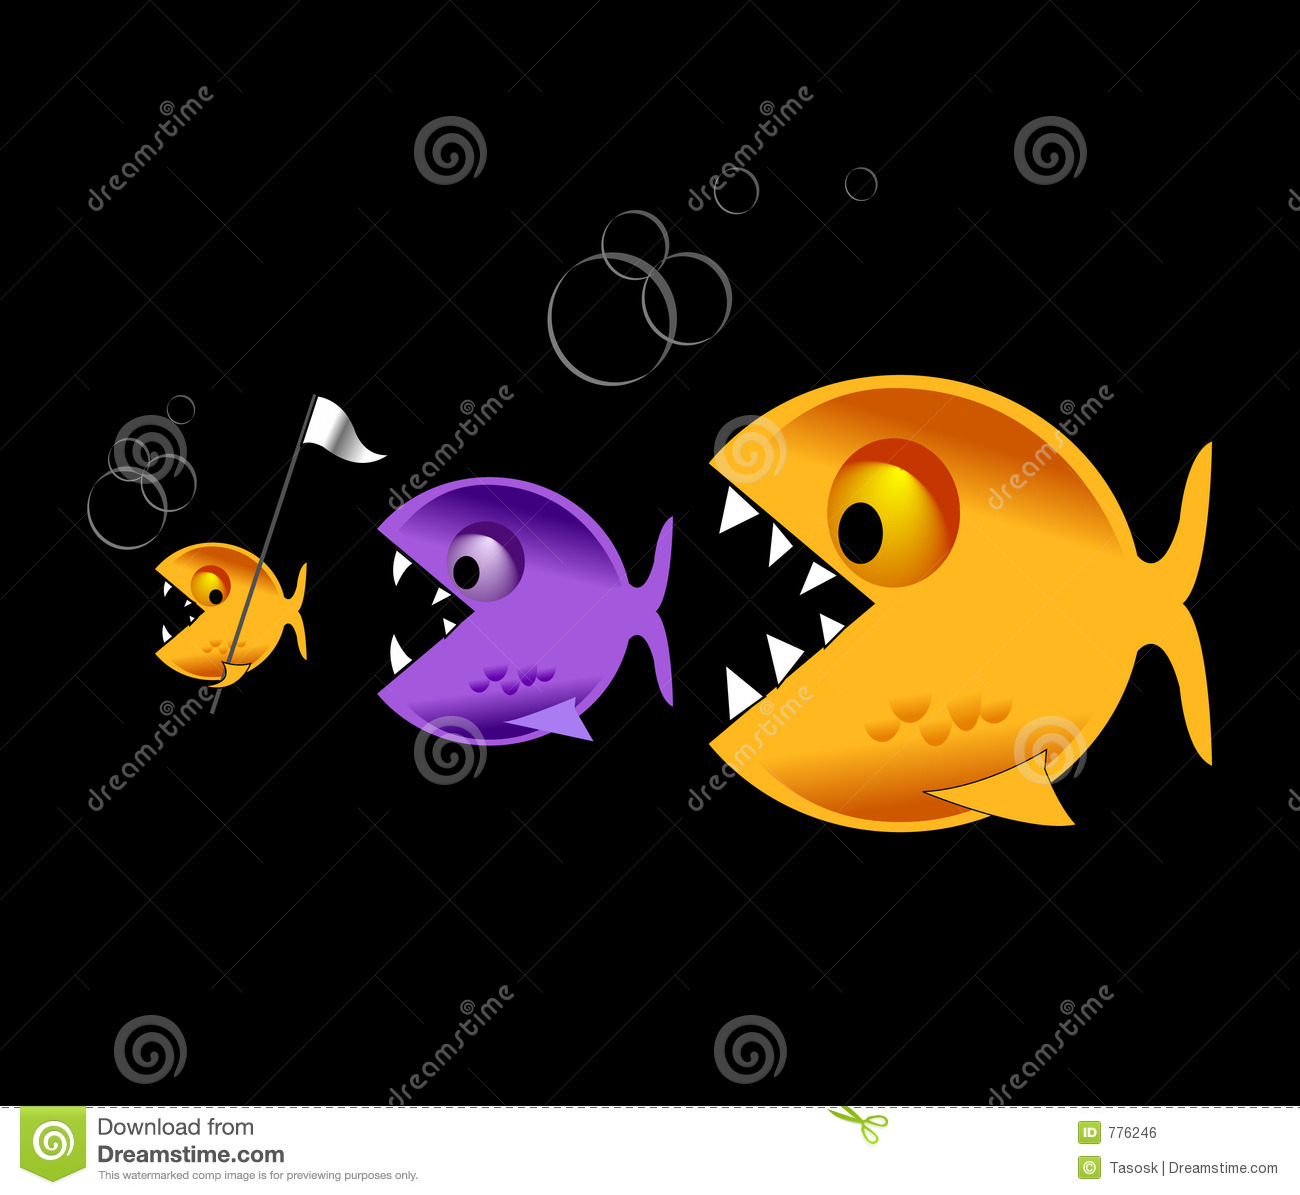 Clipart Images House Big Fish Eat Little Fish Royalty Free Stock Image Image